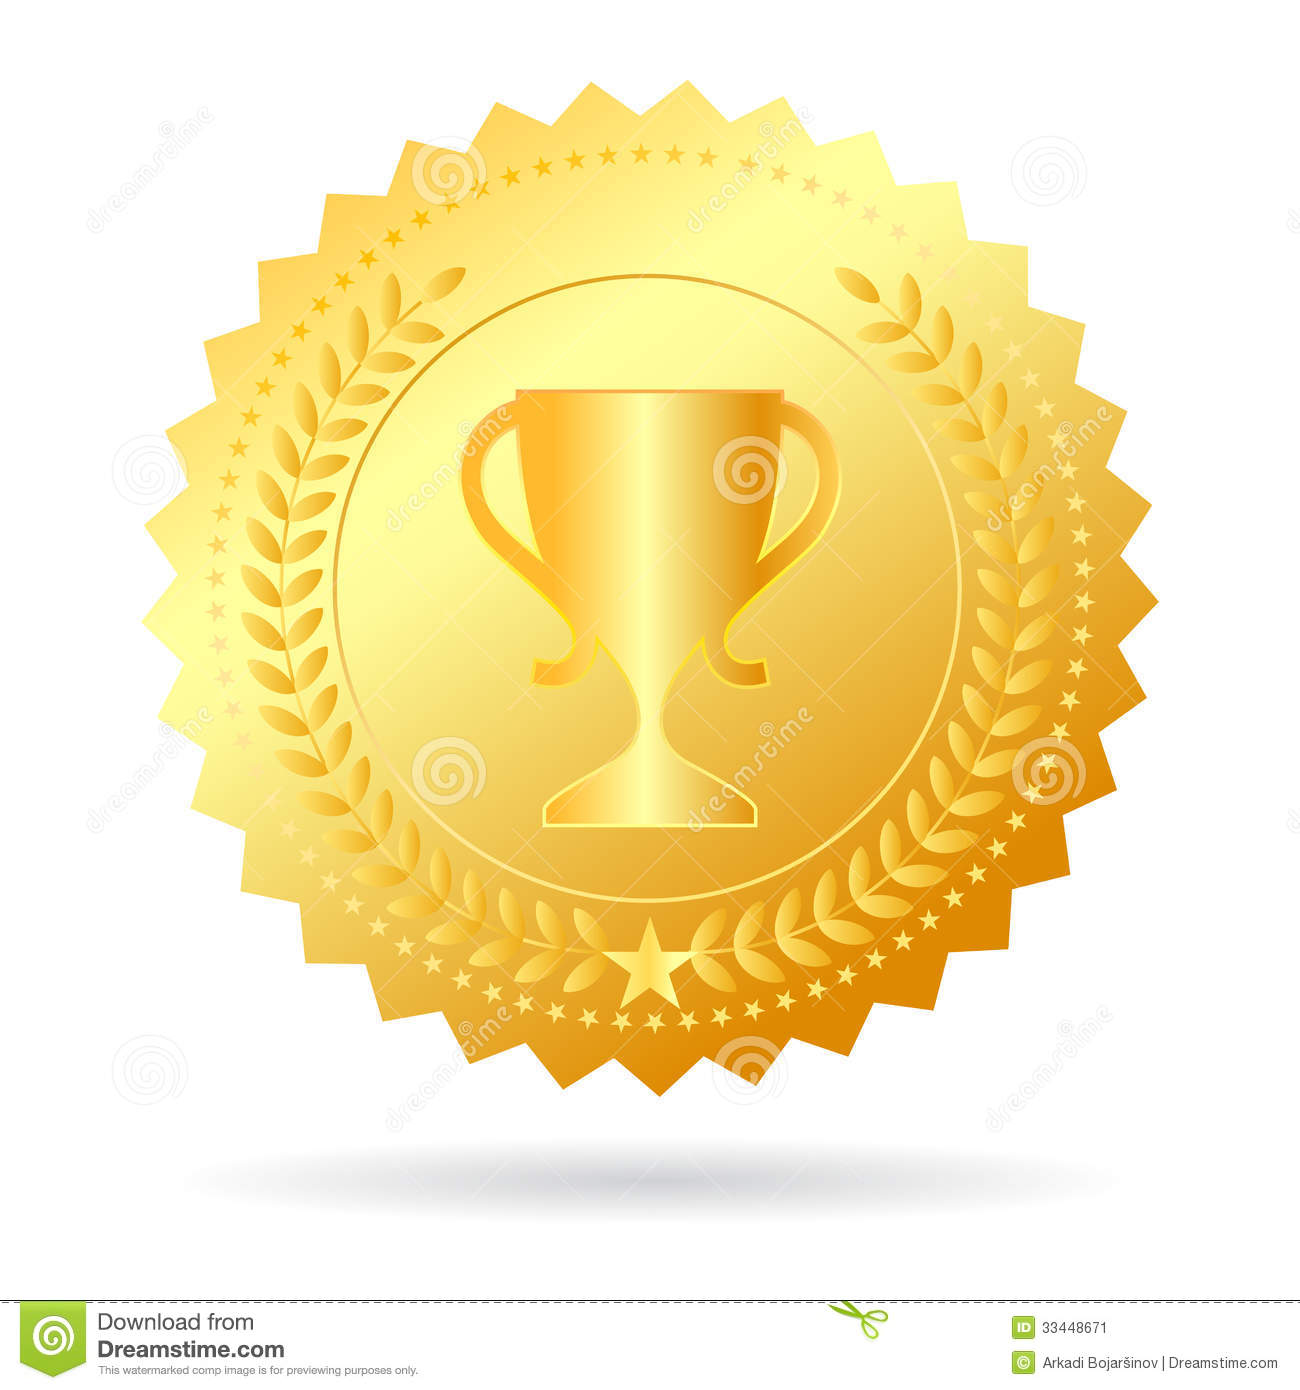 clip art medals free - photo #30